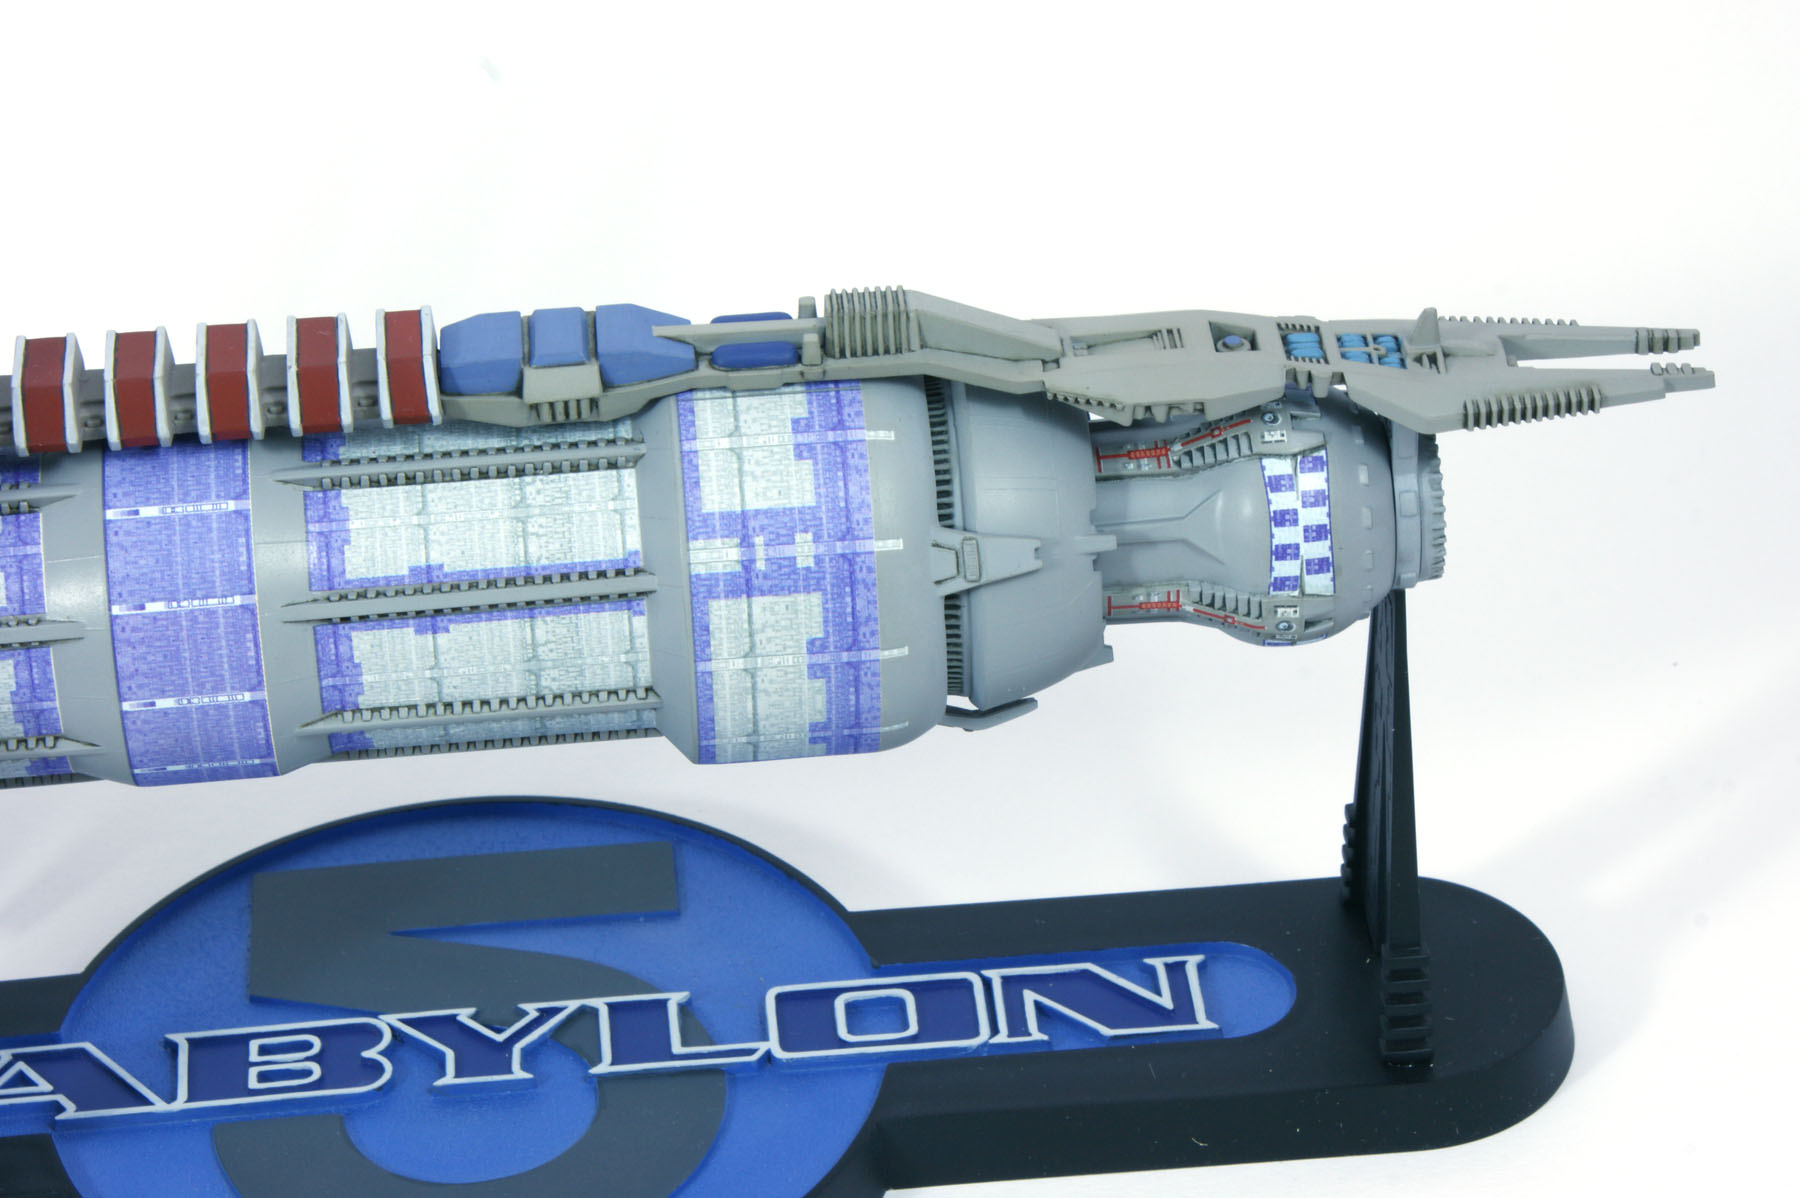 Babylon5SpaceStation05.JPG